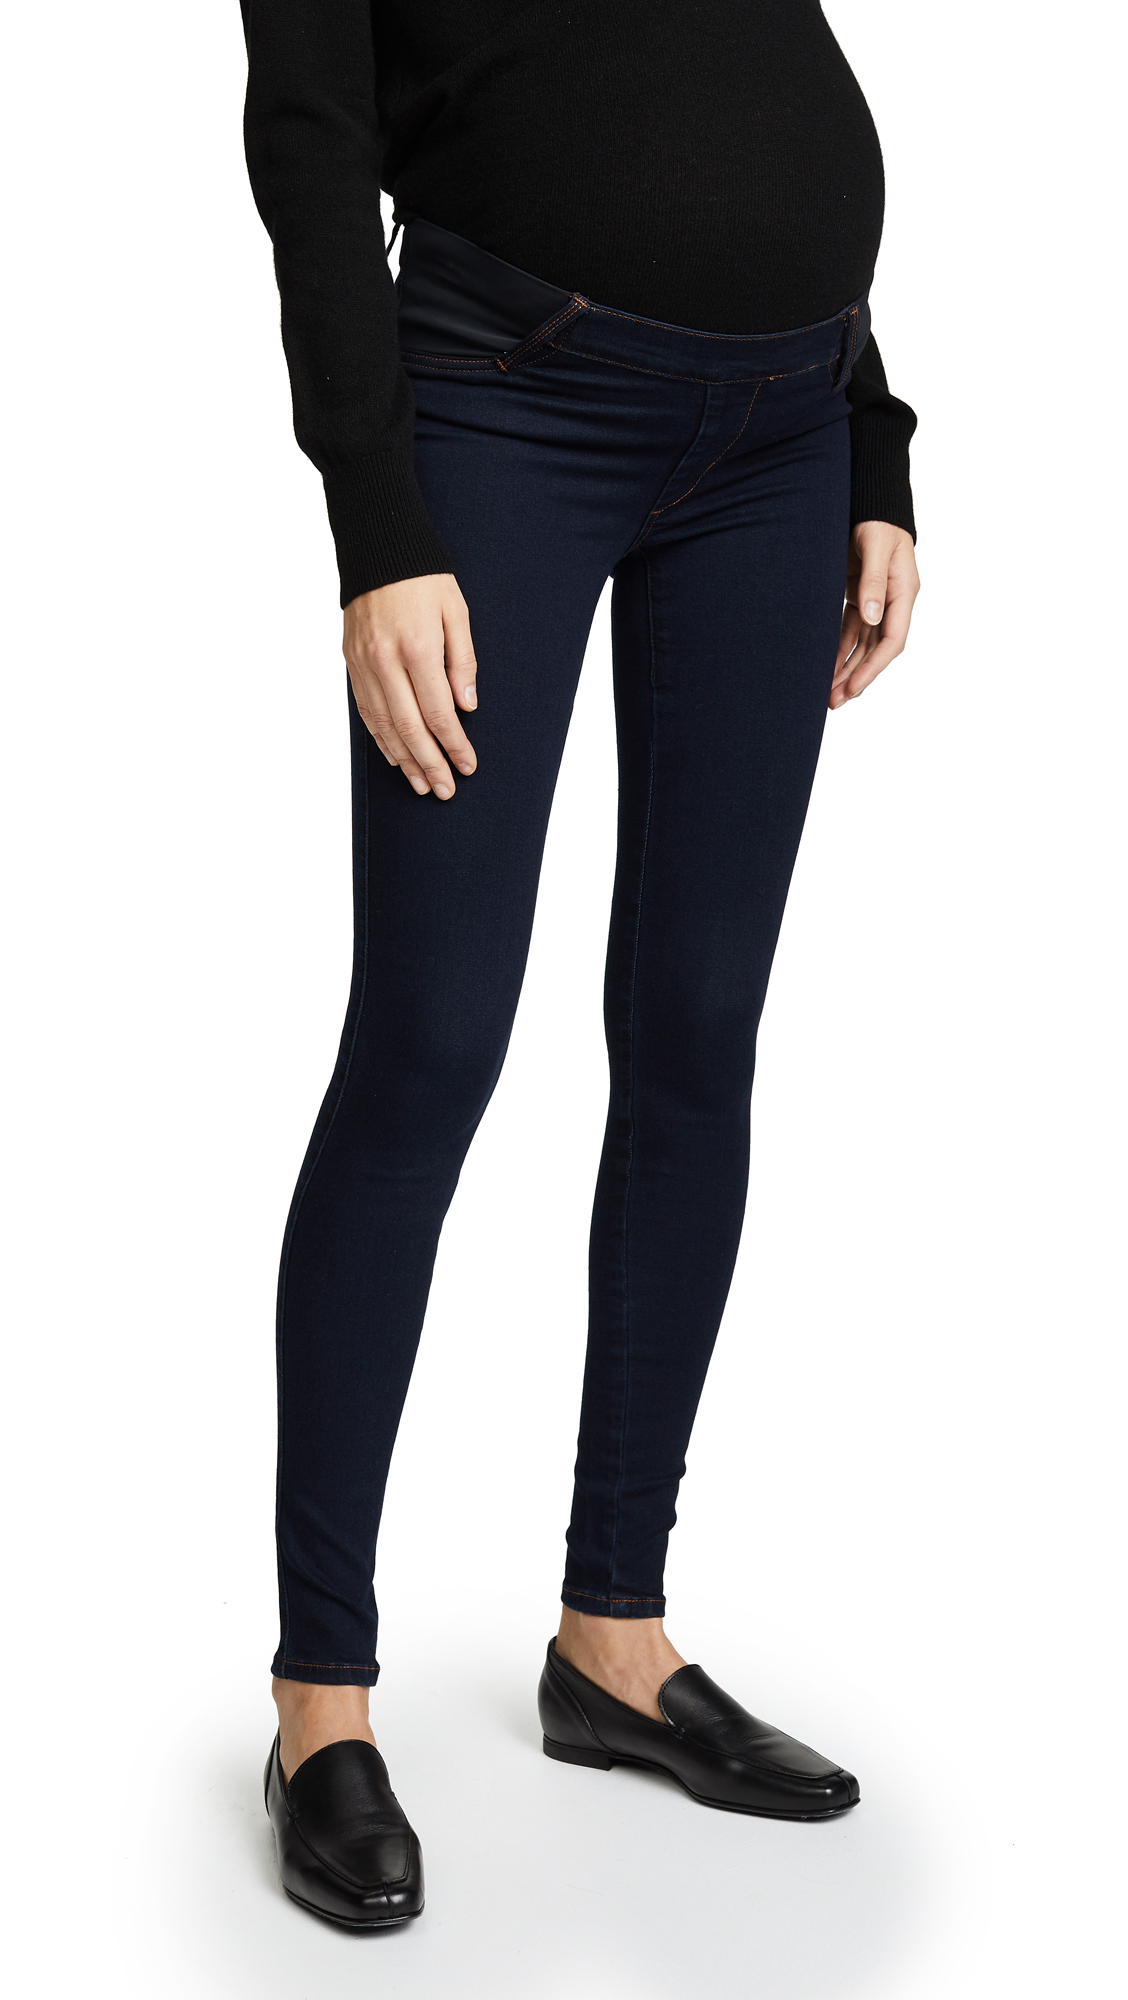 James Jeans Twiggy Maternity Under Belly Pull On Jeans In Blue Velvet